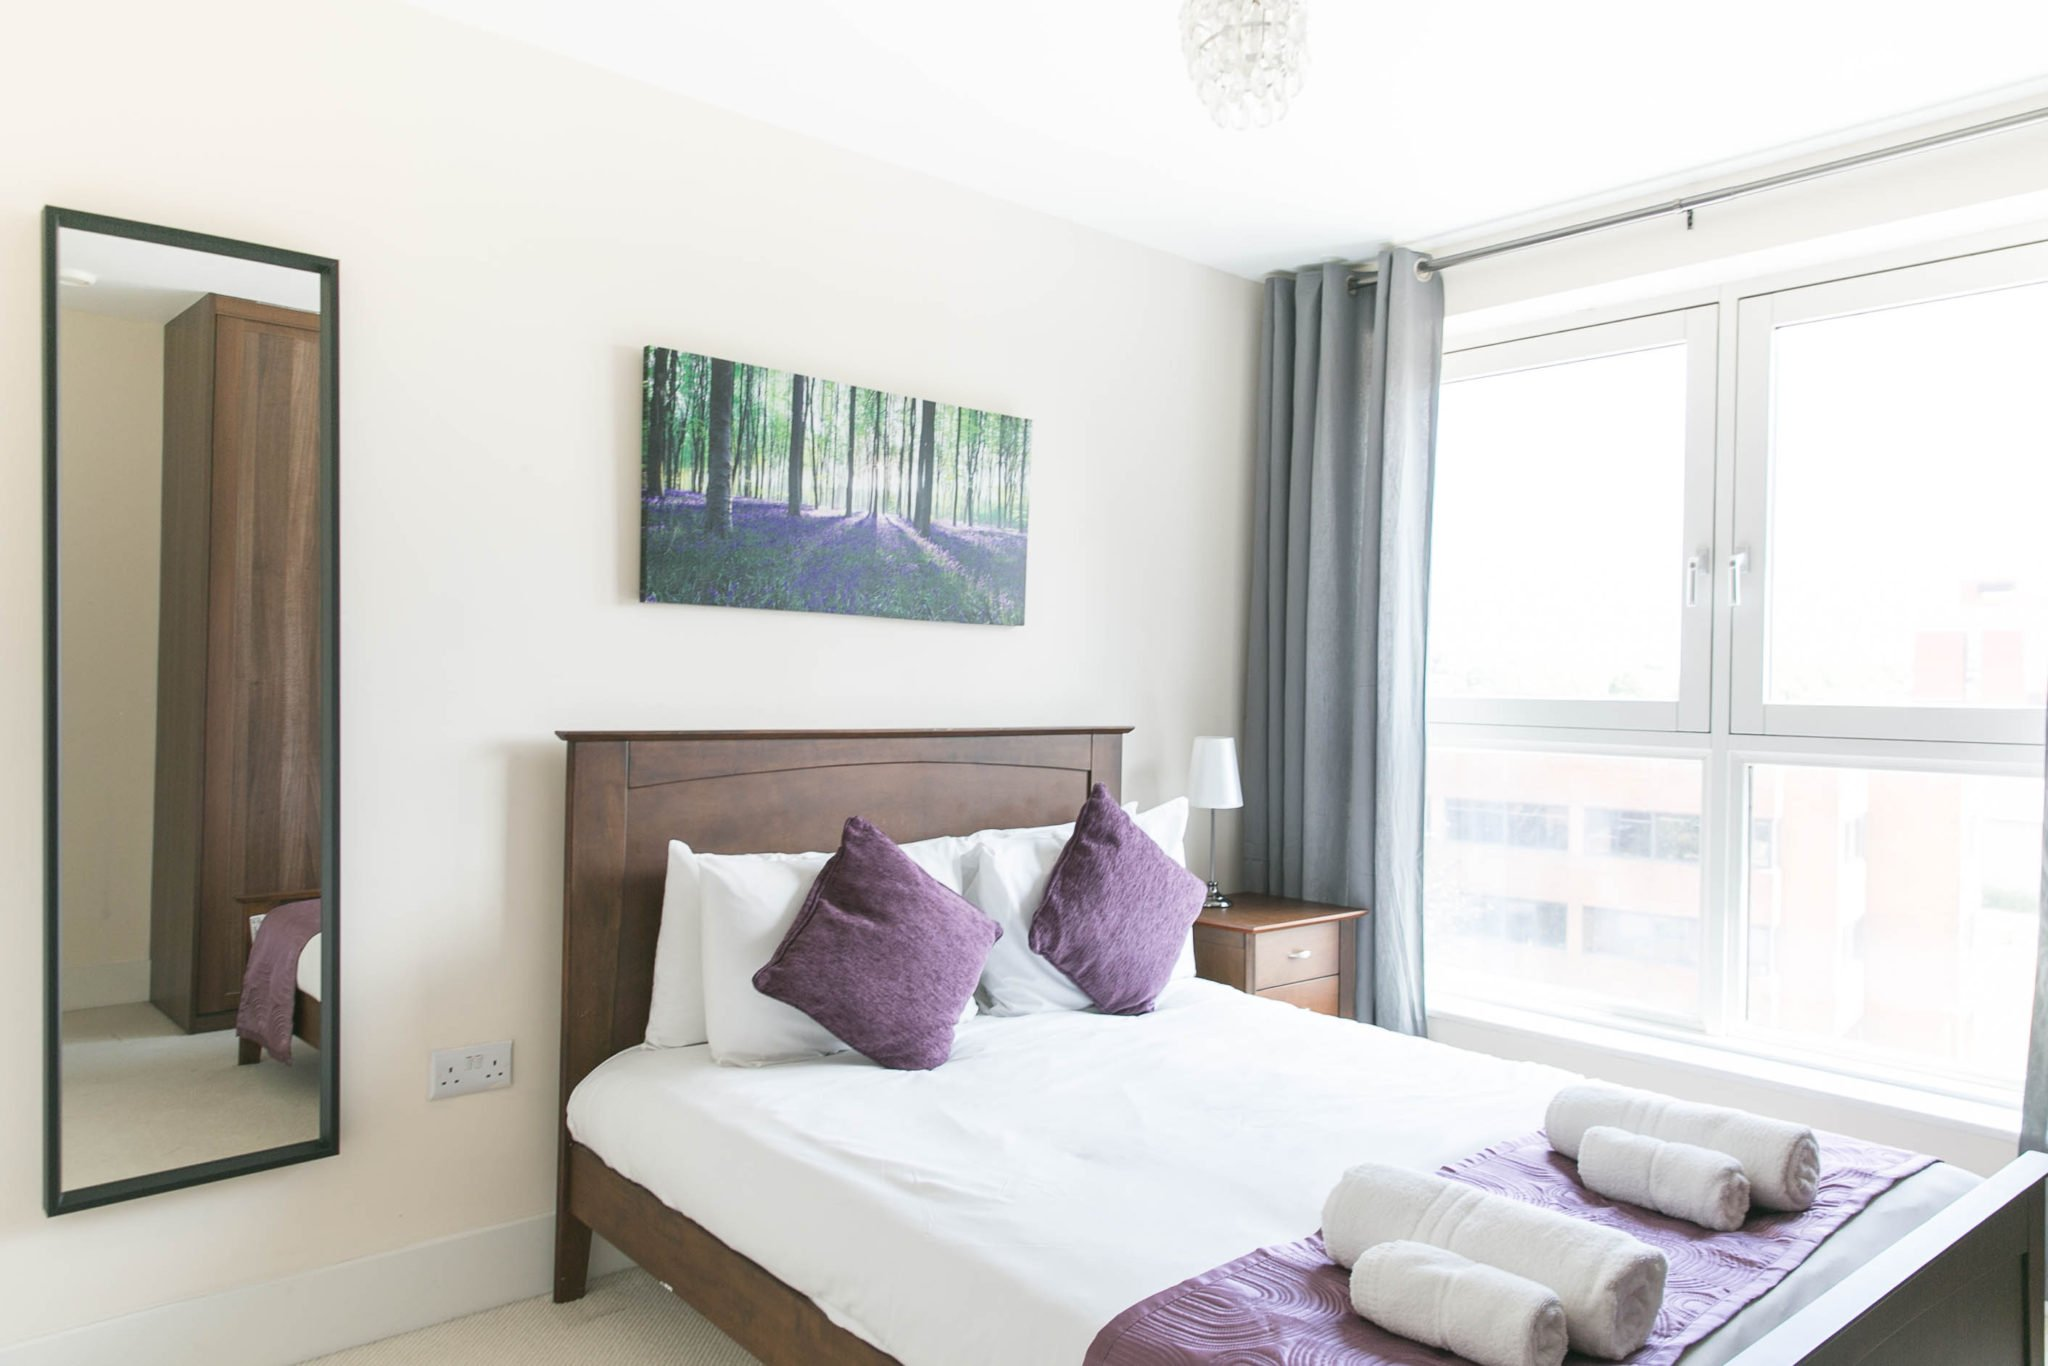 Serviced-Apartments-Basingstoke-UK-|-Serviced-Corporate-Accommodation-Hampshire-|-Short-Lets-Basingstoke-|-Cheaper-than-Hotel-|BEST-RATES--NO-FEES--BOOK-NOW---Urban-Stay